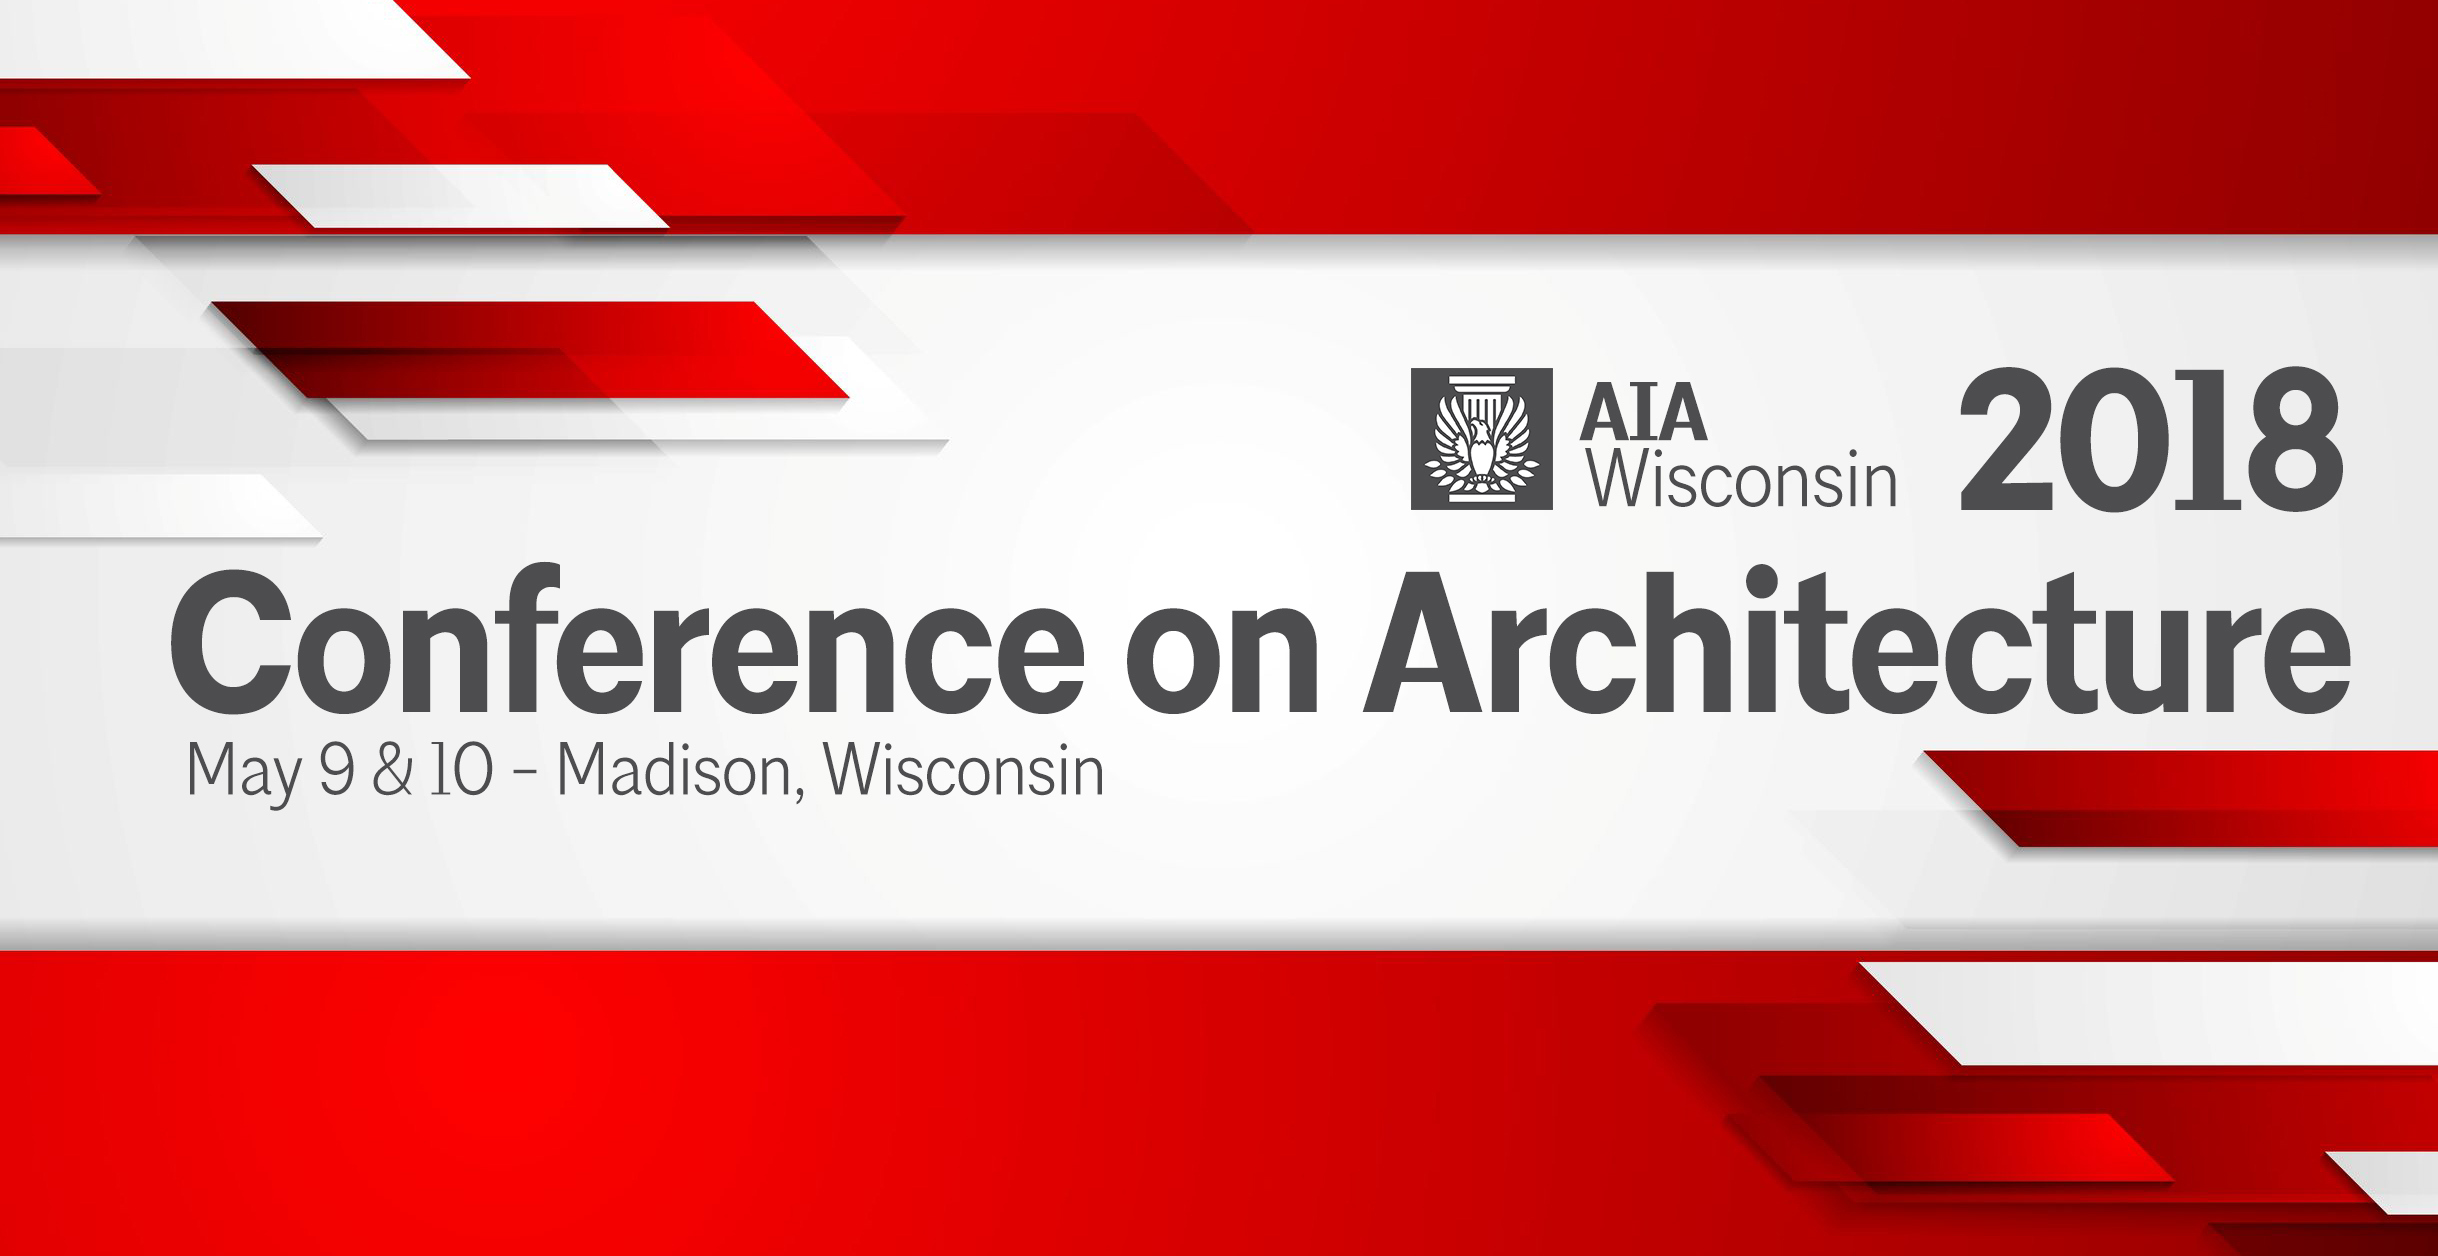 AIAW 2018 Conference on Architecture